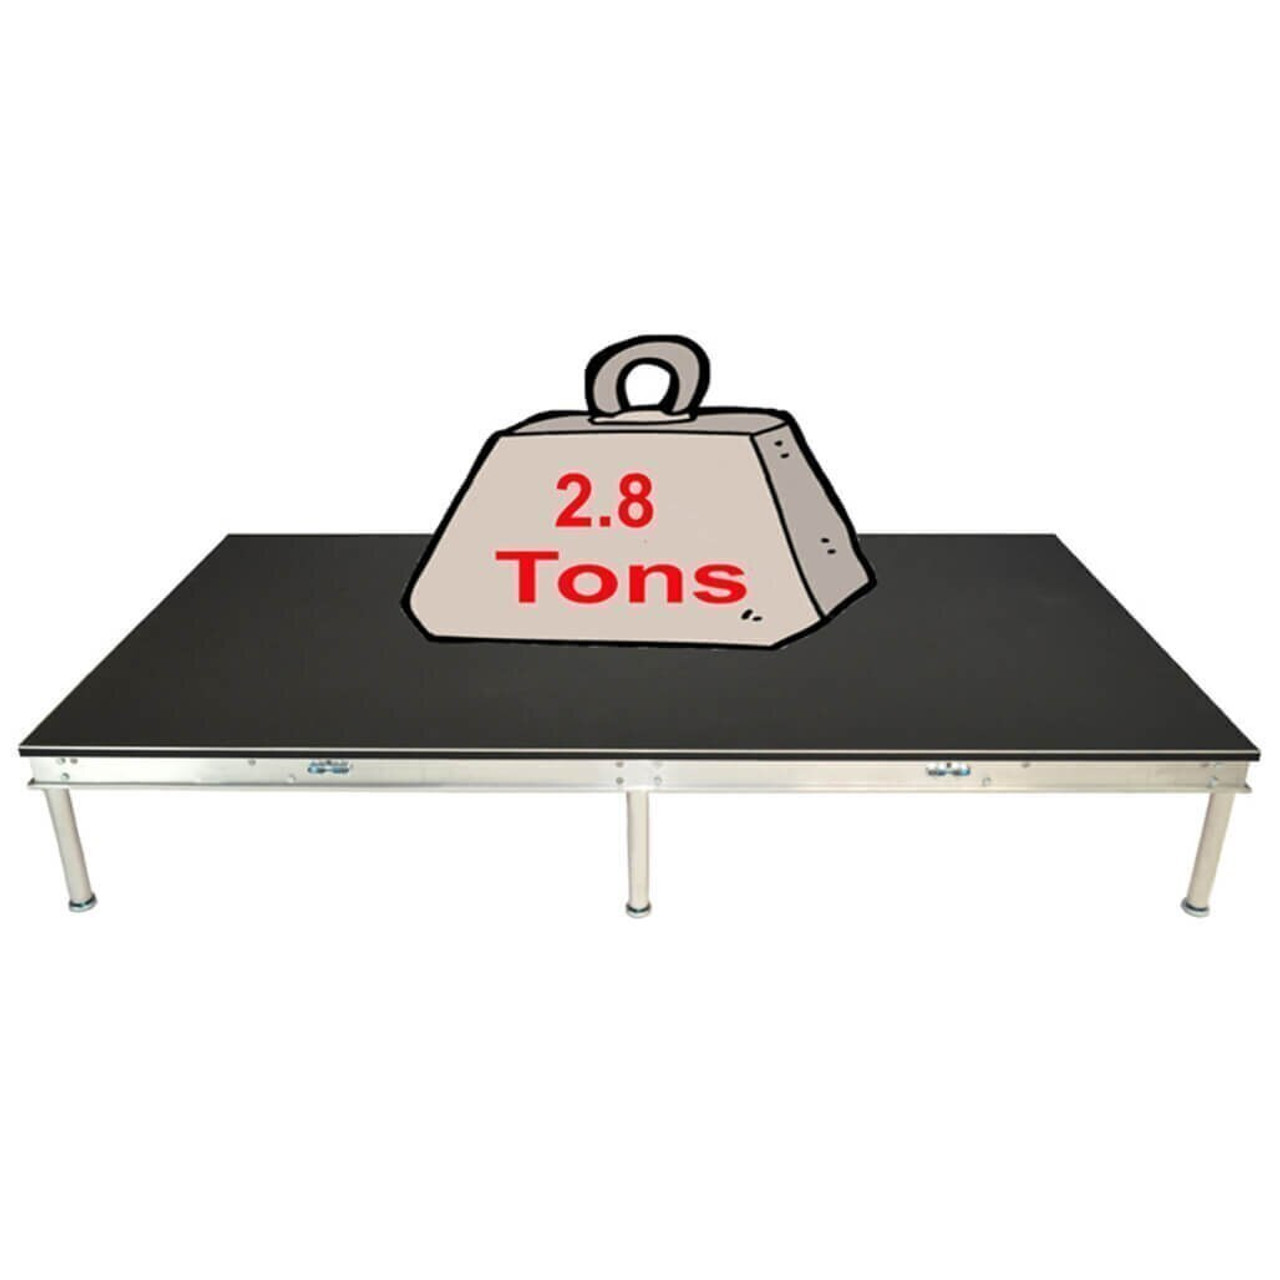 Top rated Quik Stage 4' x 32' High Portable Stage Package with Black Polyvinyl Non-Skid Surface. Additional Heights and Surfaces Available - Holds 2.8 tons per 4 x 8 or 1.4 tons per 4 x 4 when spread out evenly